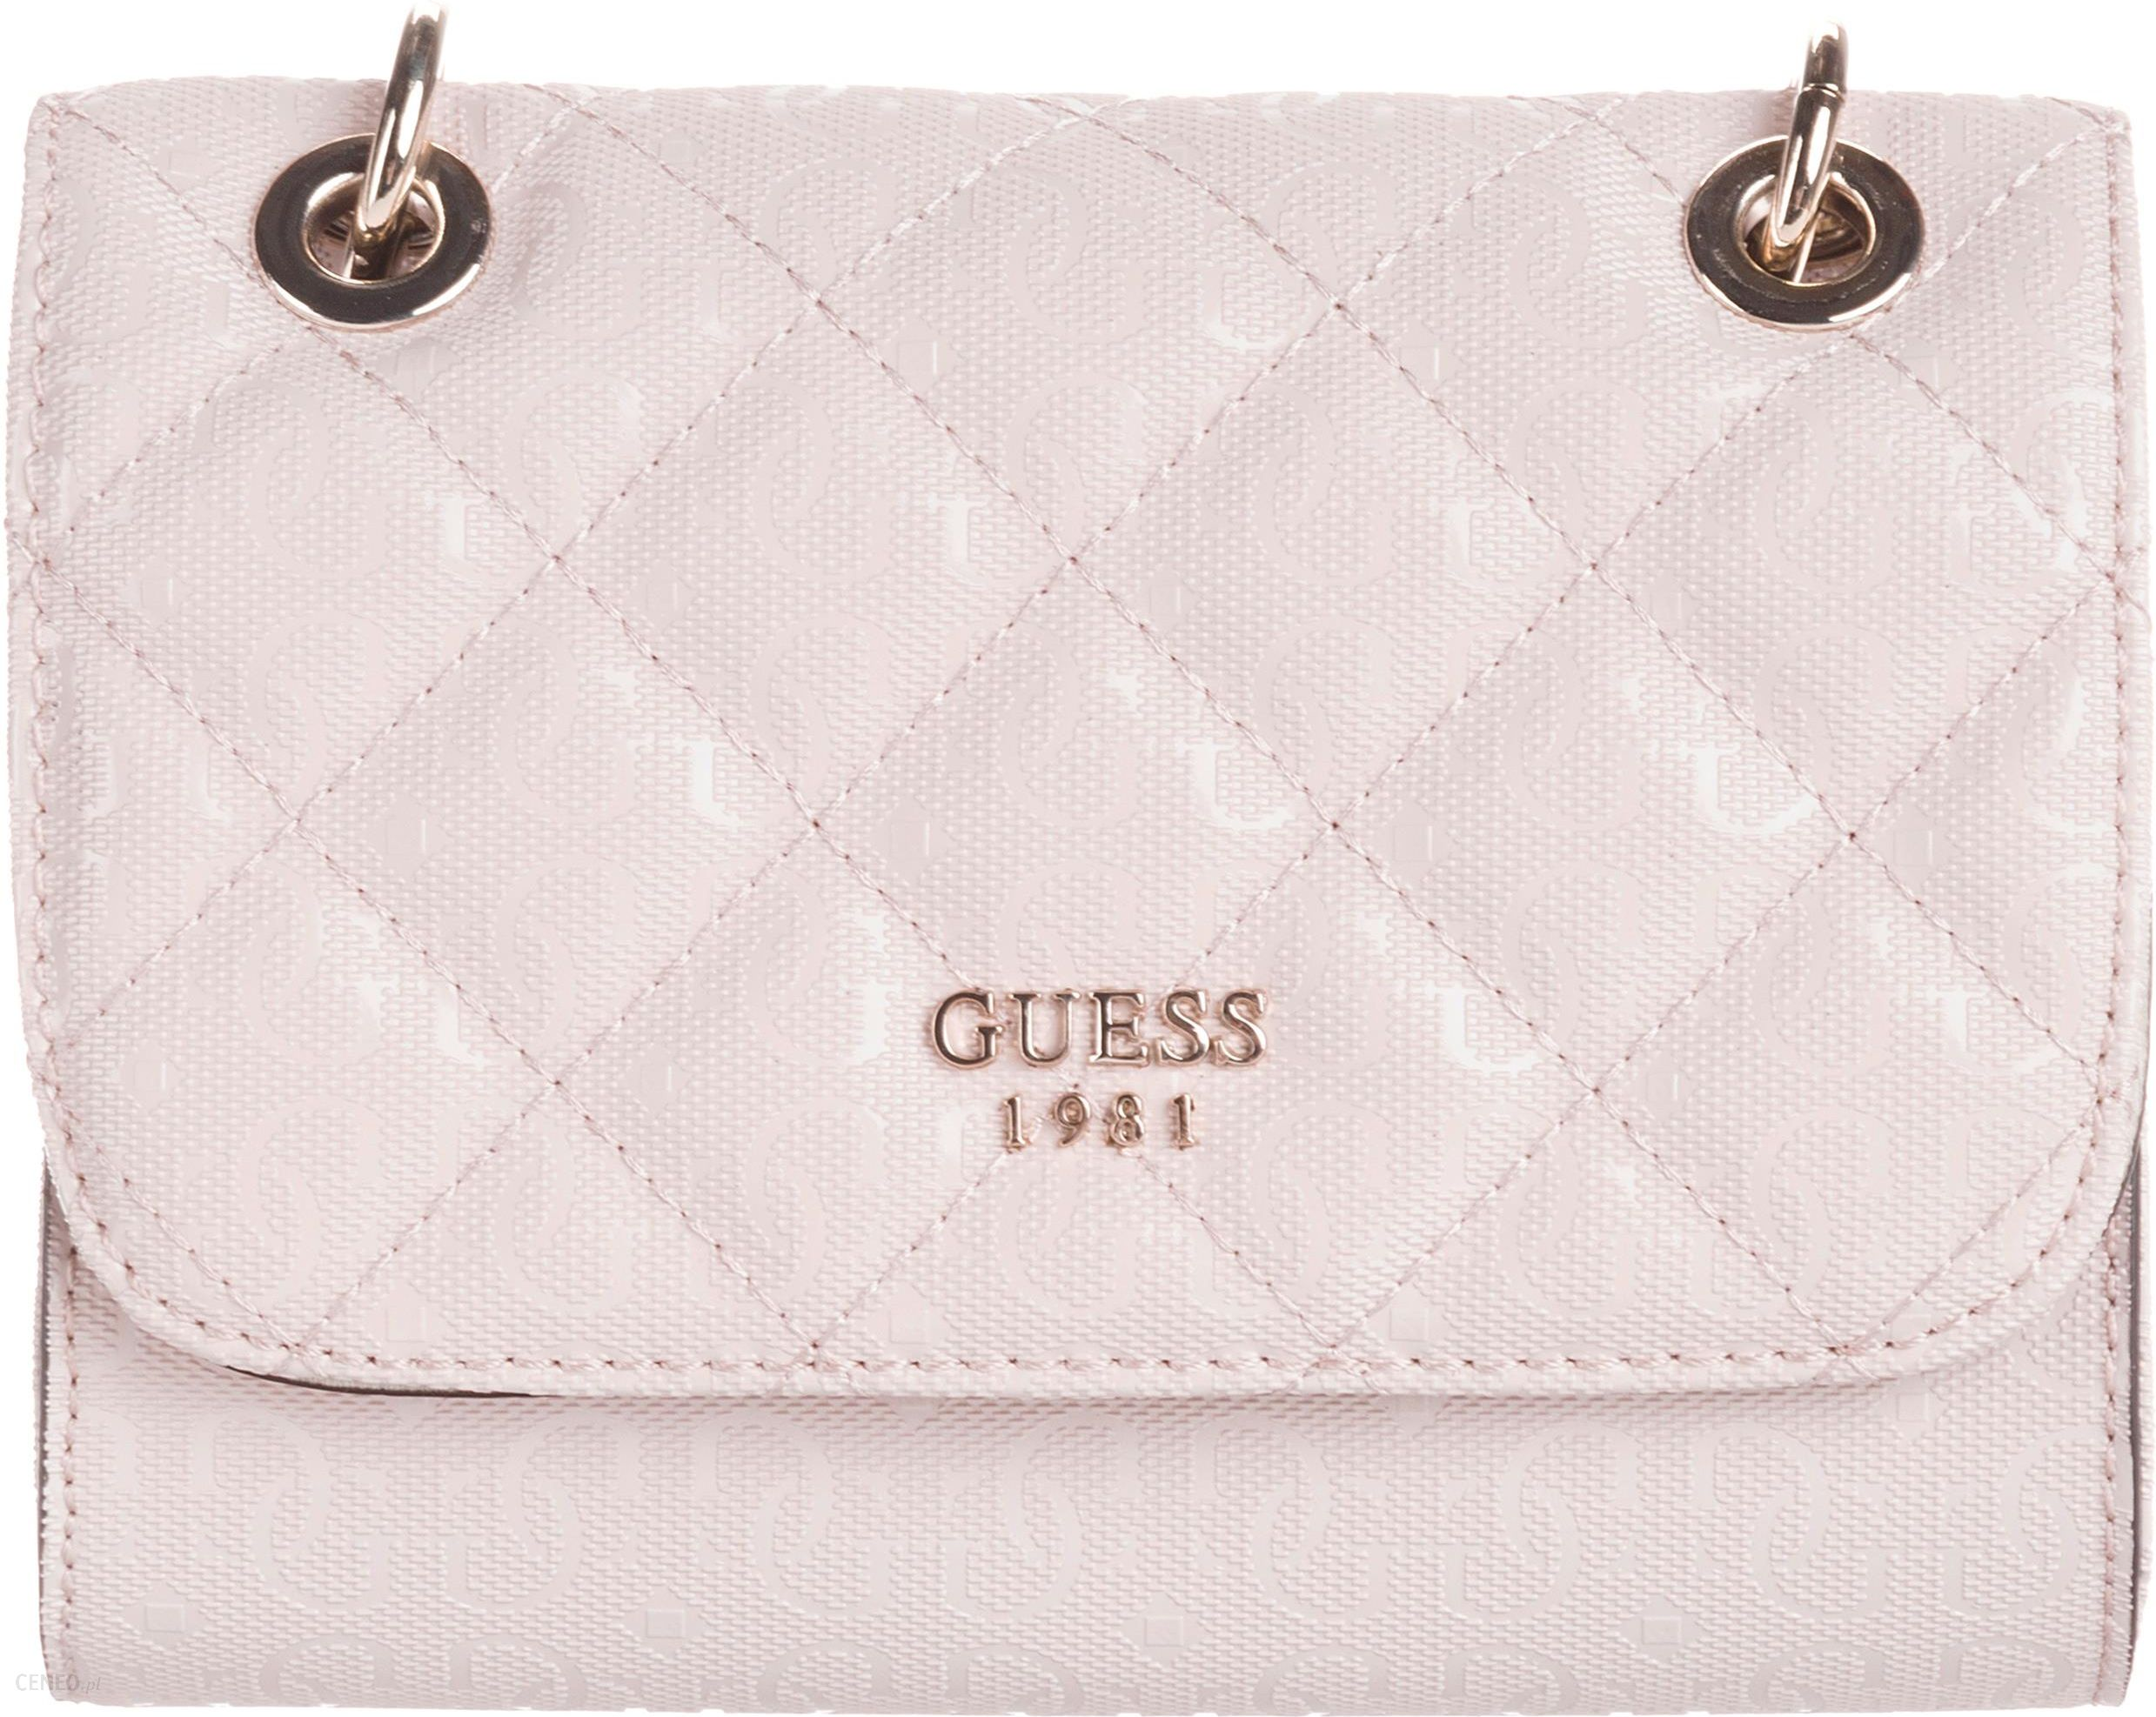 1ded6e685126f Guess Seraphina Mini Cross body bag Różowy UNI - Ceny i opinie ...